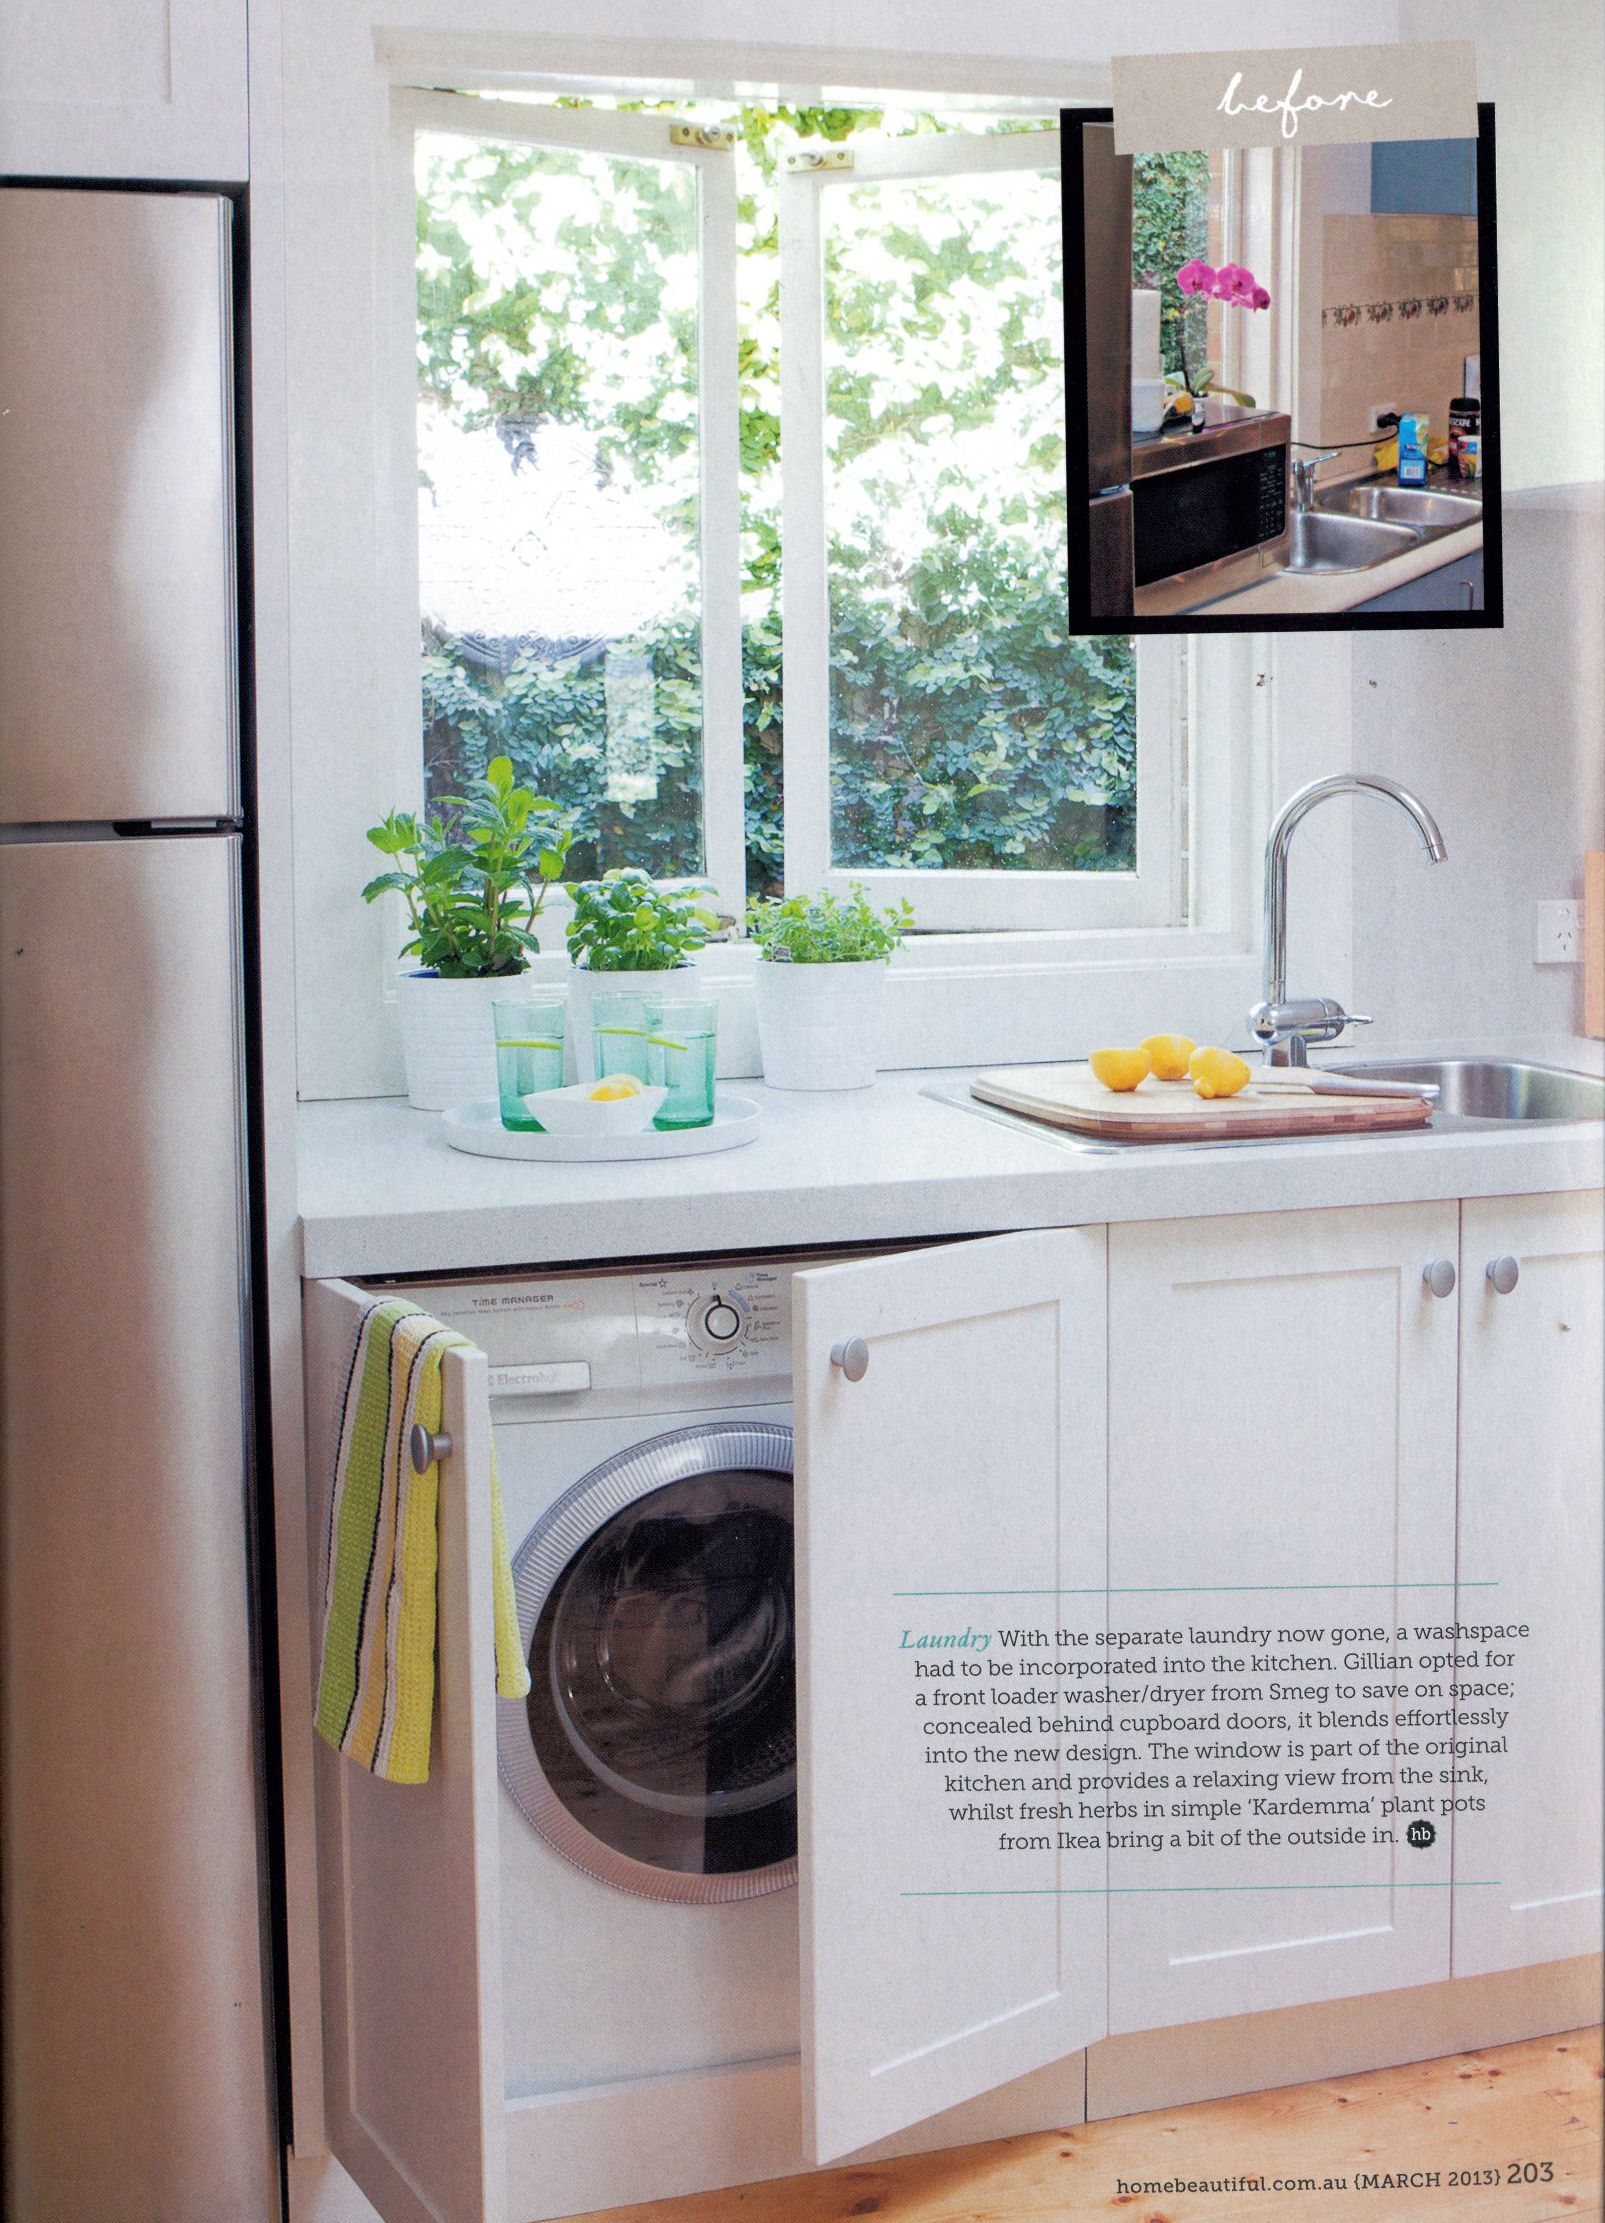 cupboard doors + hidden washing machine   ideas for the house in